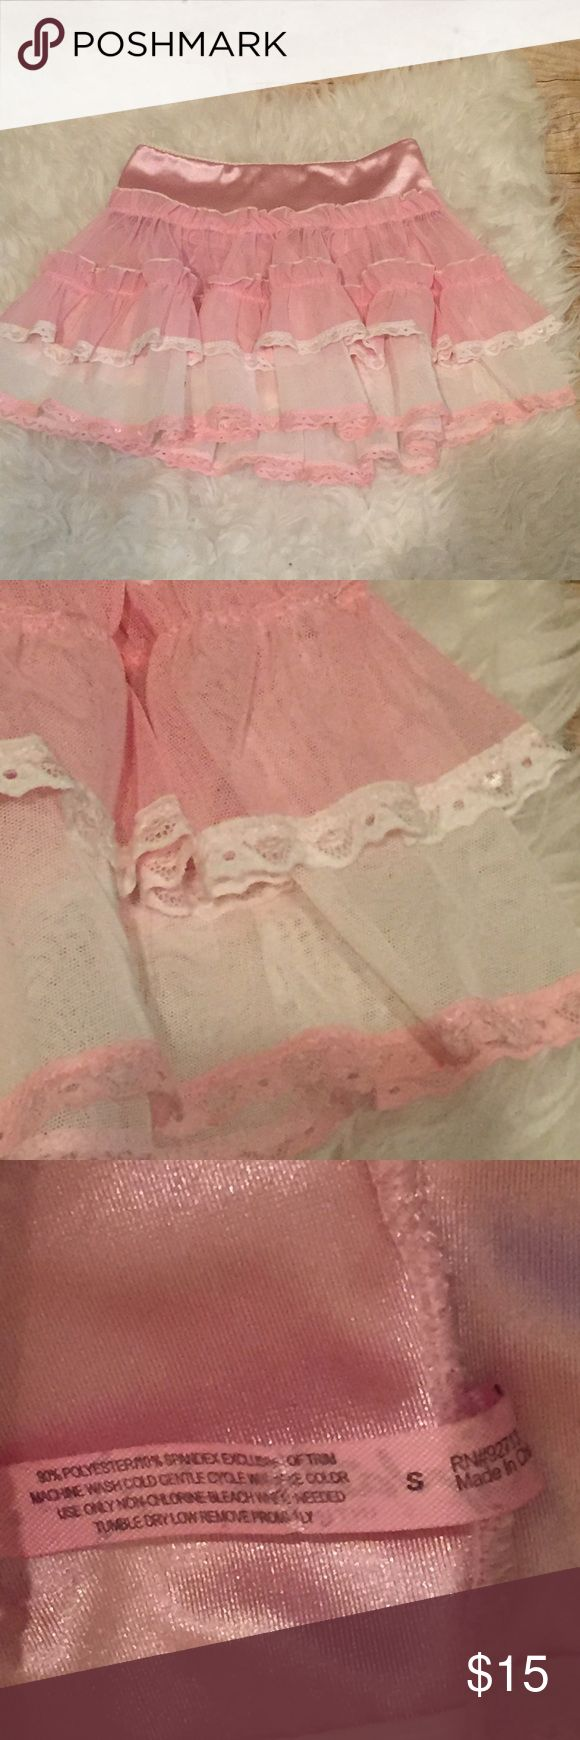 Pink White Lace Stripper Sexy Lingerie Slip Skirt Adorable, never worn cascade mini skirt with Satin waistband and sheer layers of Lace trimmed mesh in white and pink. Size small. Intimates & Sleepwear Chemises & Slips